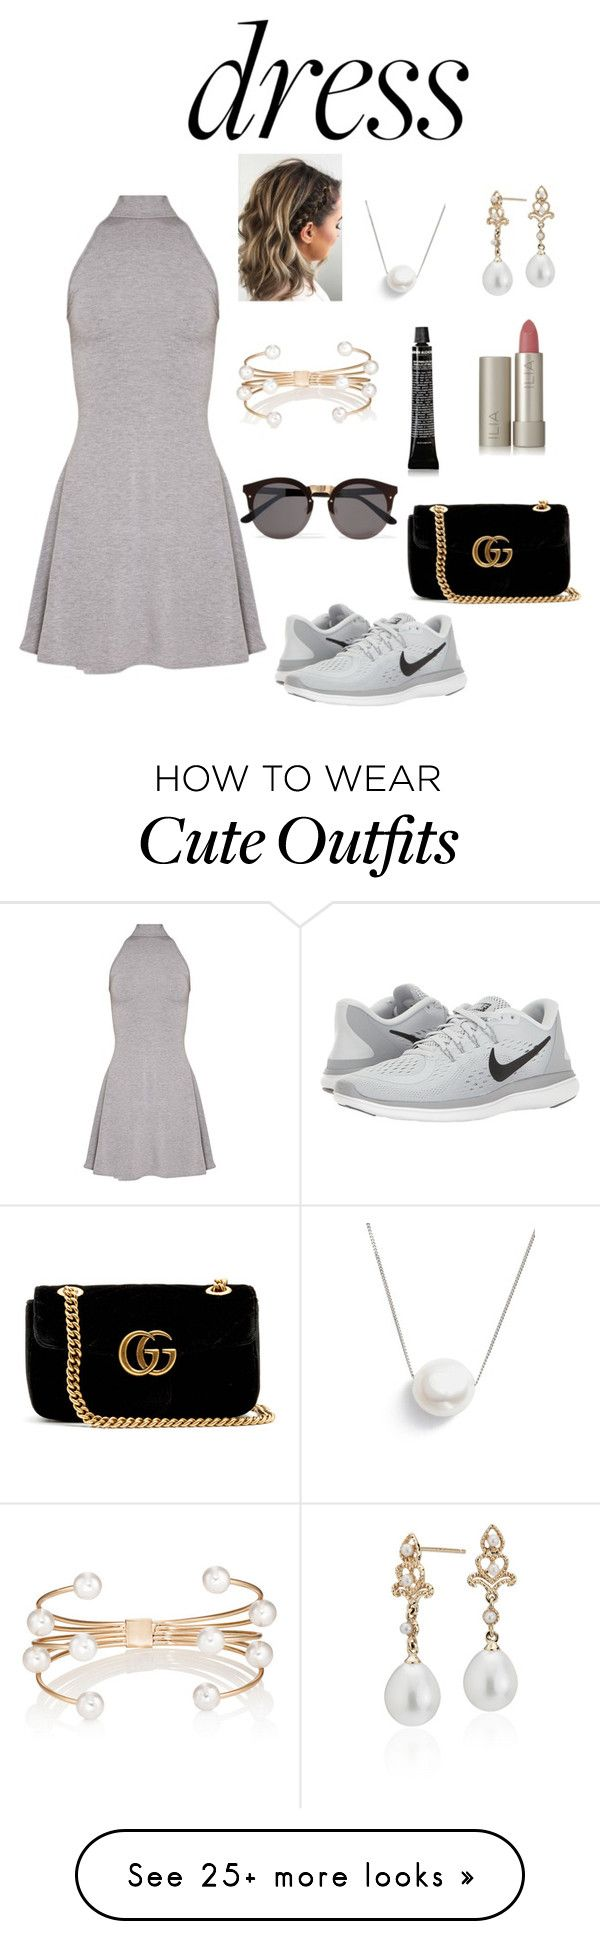 """Throw-and-go "" by mclove-13 on Polyvore featuring Illesteva, NIKE, Gucci, Chan Luu, Blue Nile, Ilia, Kenneth Jay Lane and Grown Alchemist"